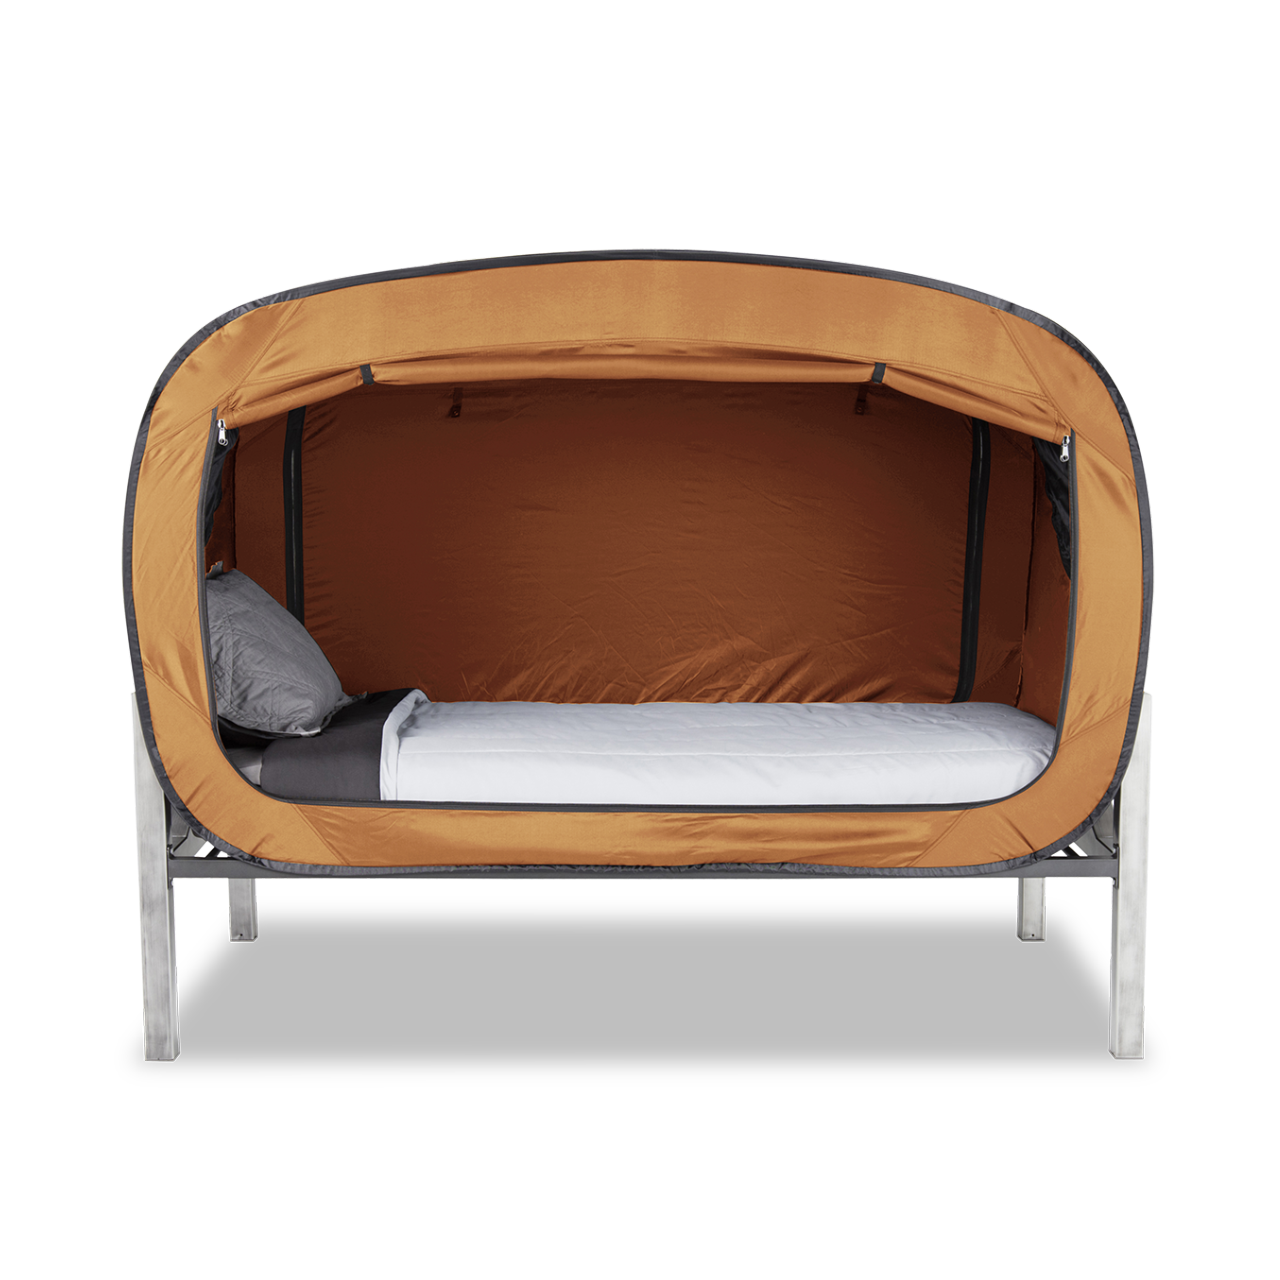 The Bed Tent (With images) Bed tent, Camping bed, Tent